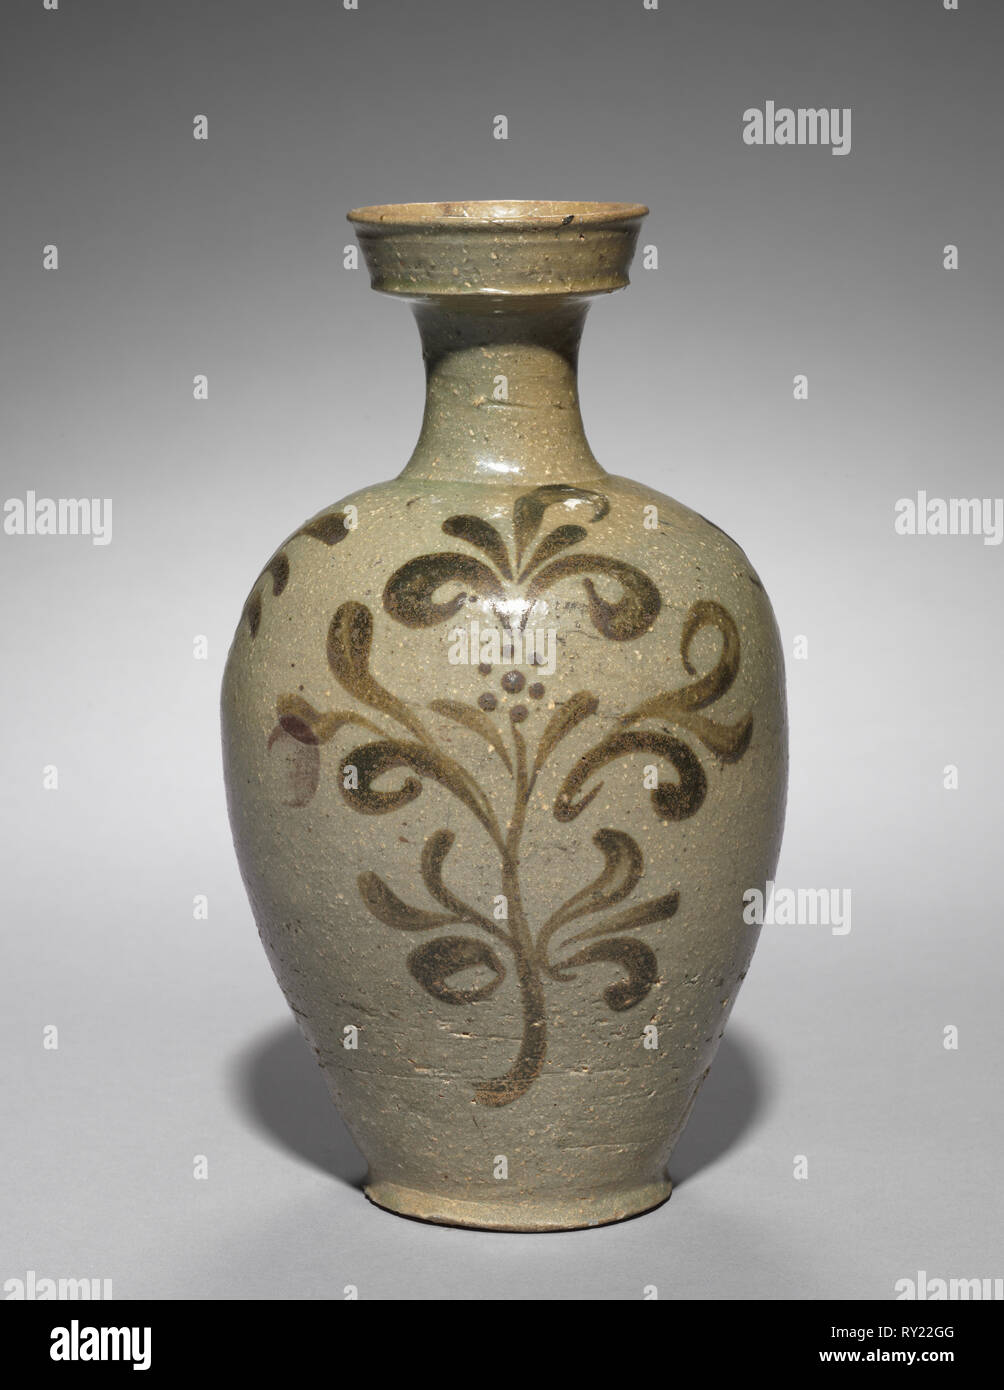 Vase with Floral Design, 1100s. Korea, Goryeo period (918-1392). Celadon with underglaze iron-brown; overall: 26.4 cm (10 3/8 in - Stock Image